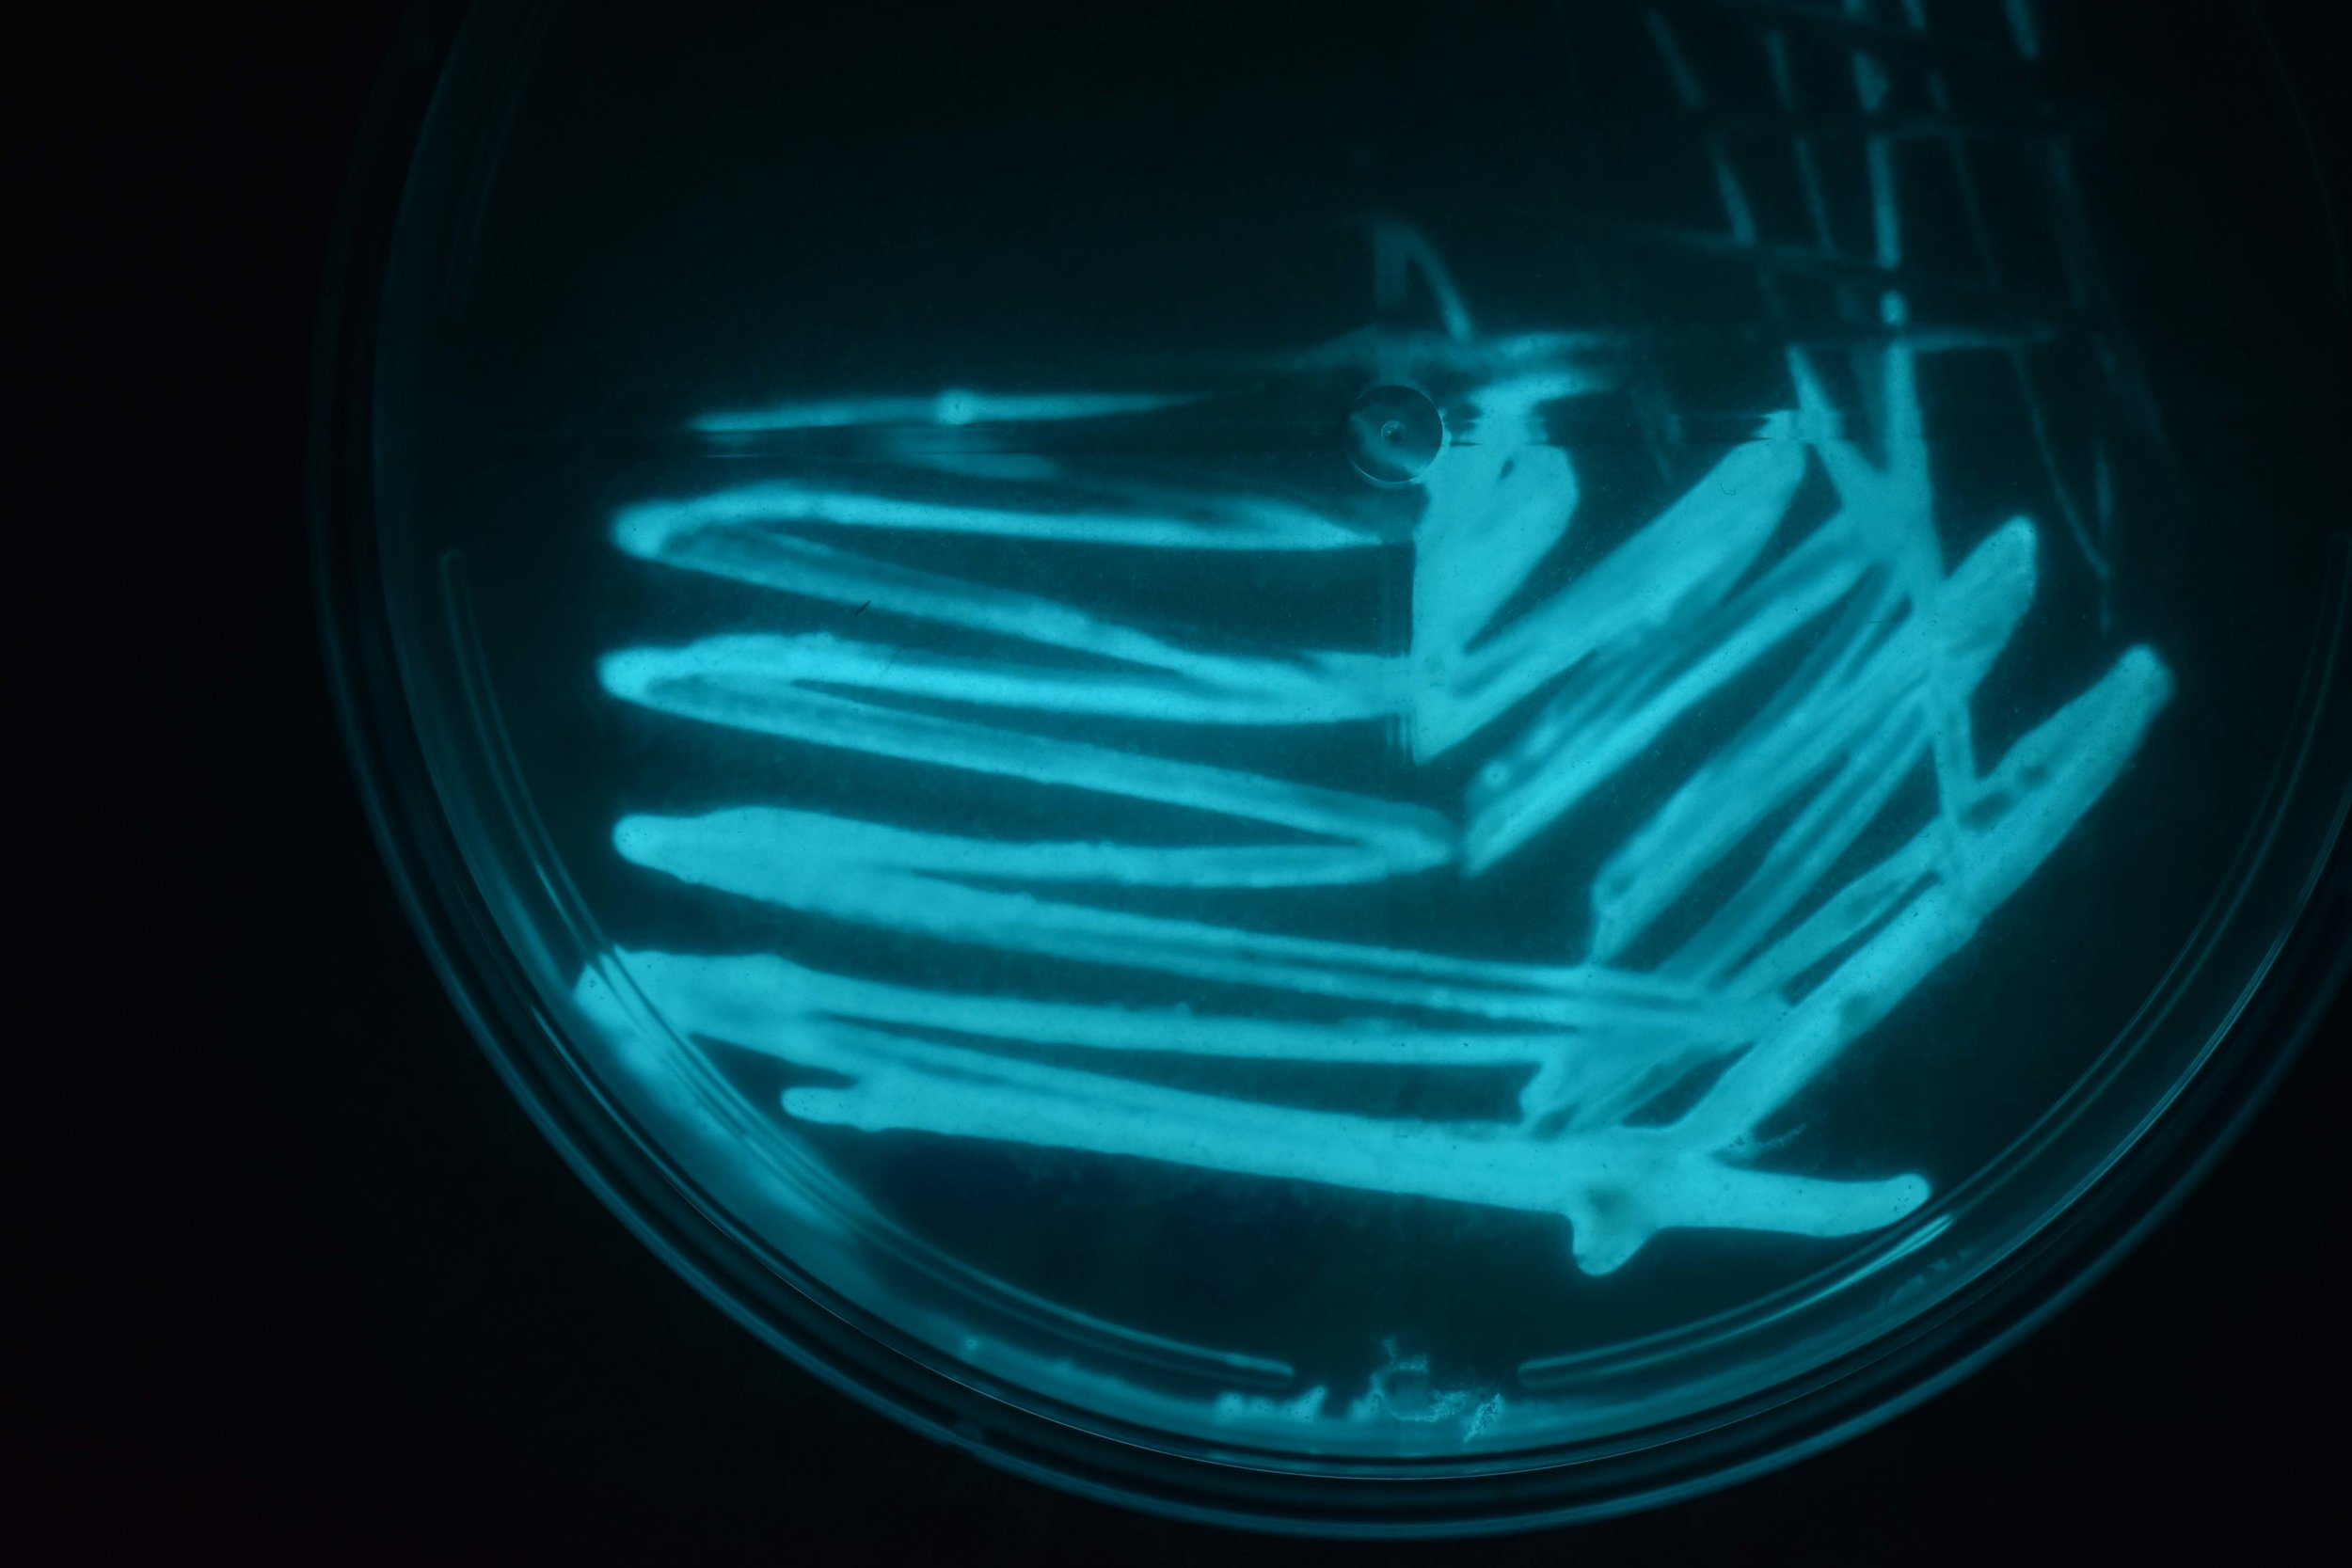 Halo bacteria, Slime mold, and Luminous bacteria (seen above) are among the biomaterials stored at the Materialenbank at BioArt Laboratories